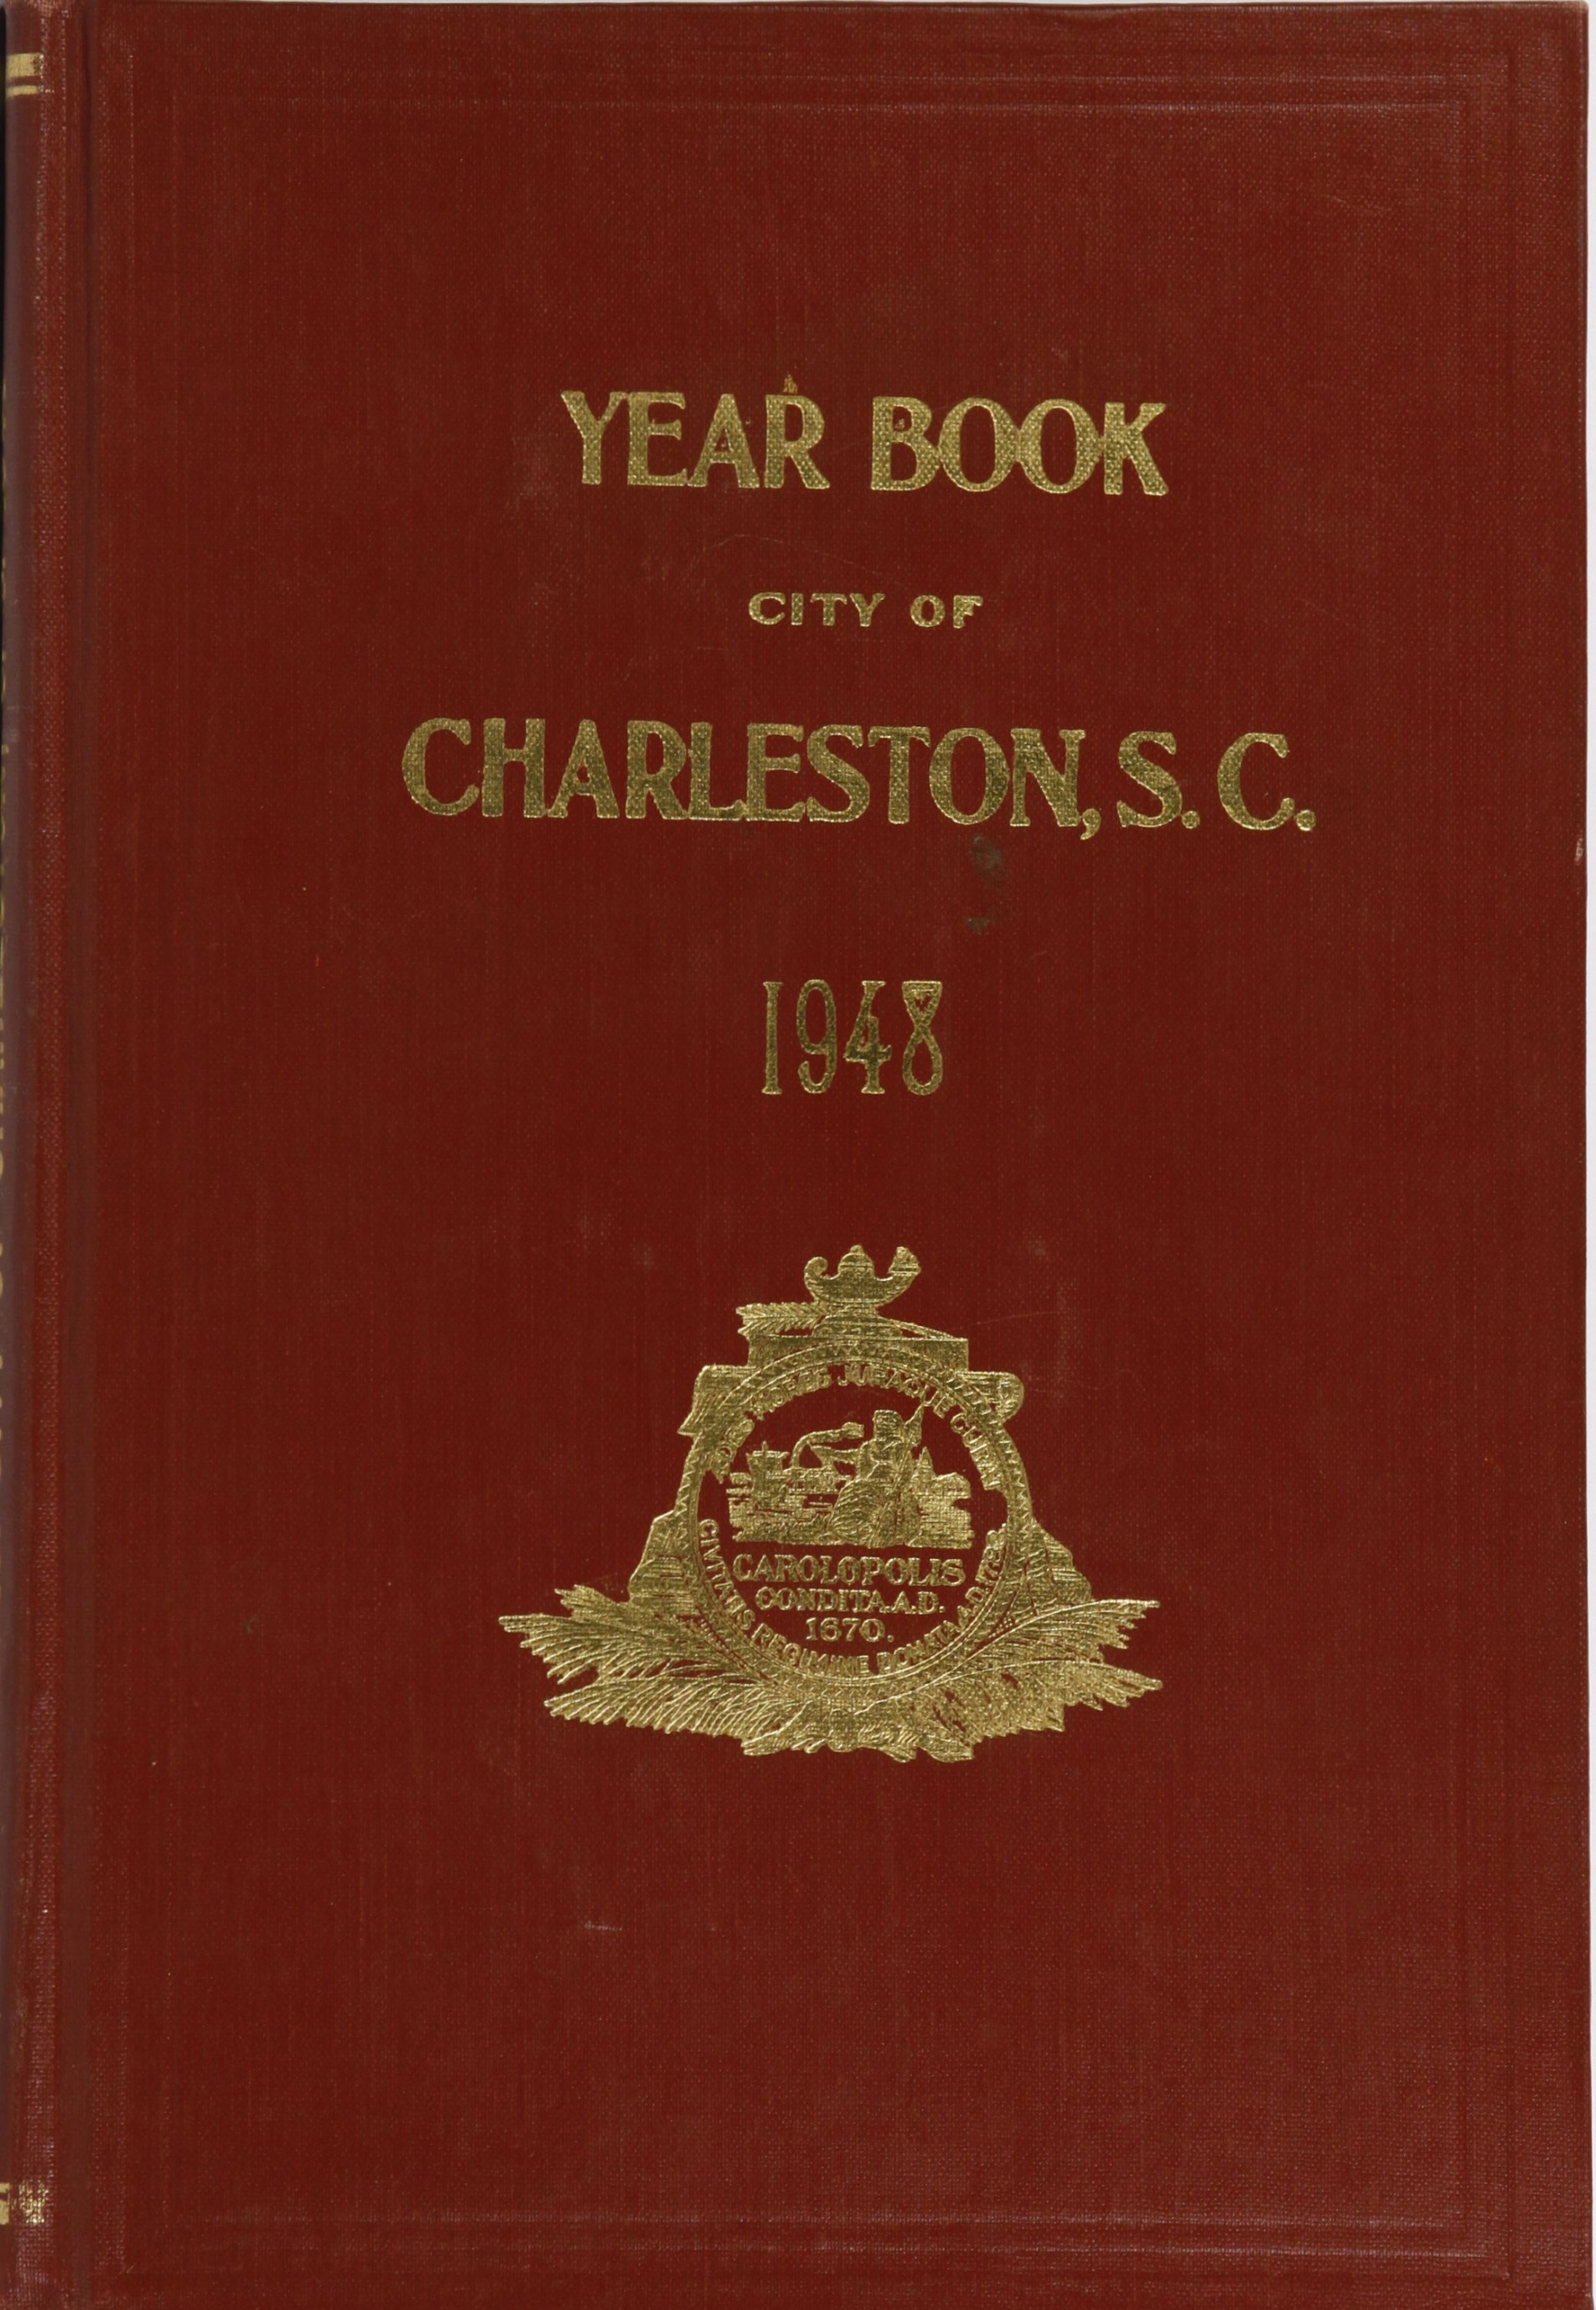 Charleston Yearbook, 1948